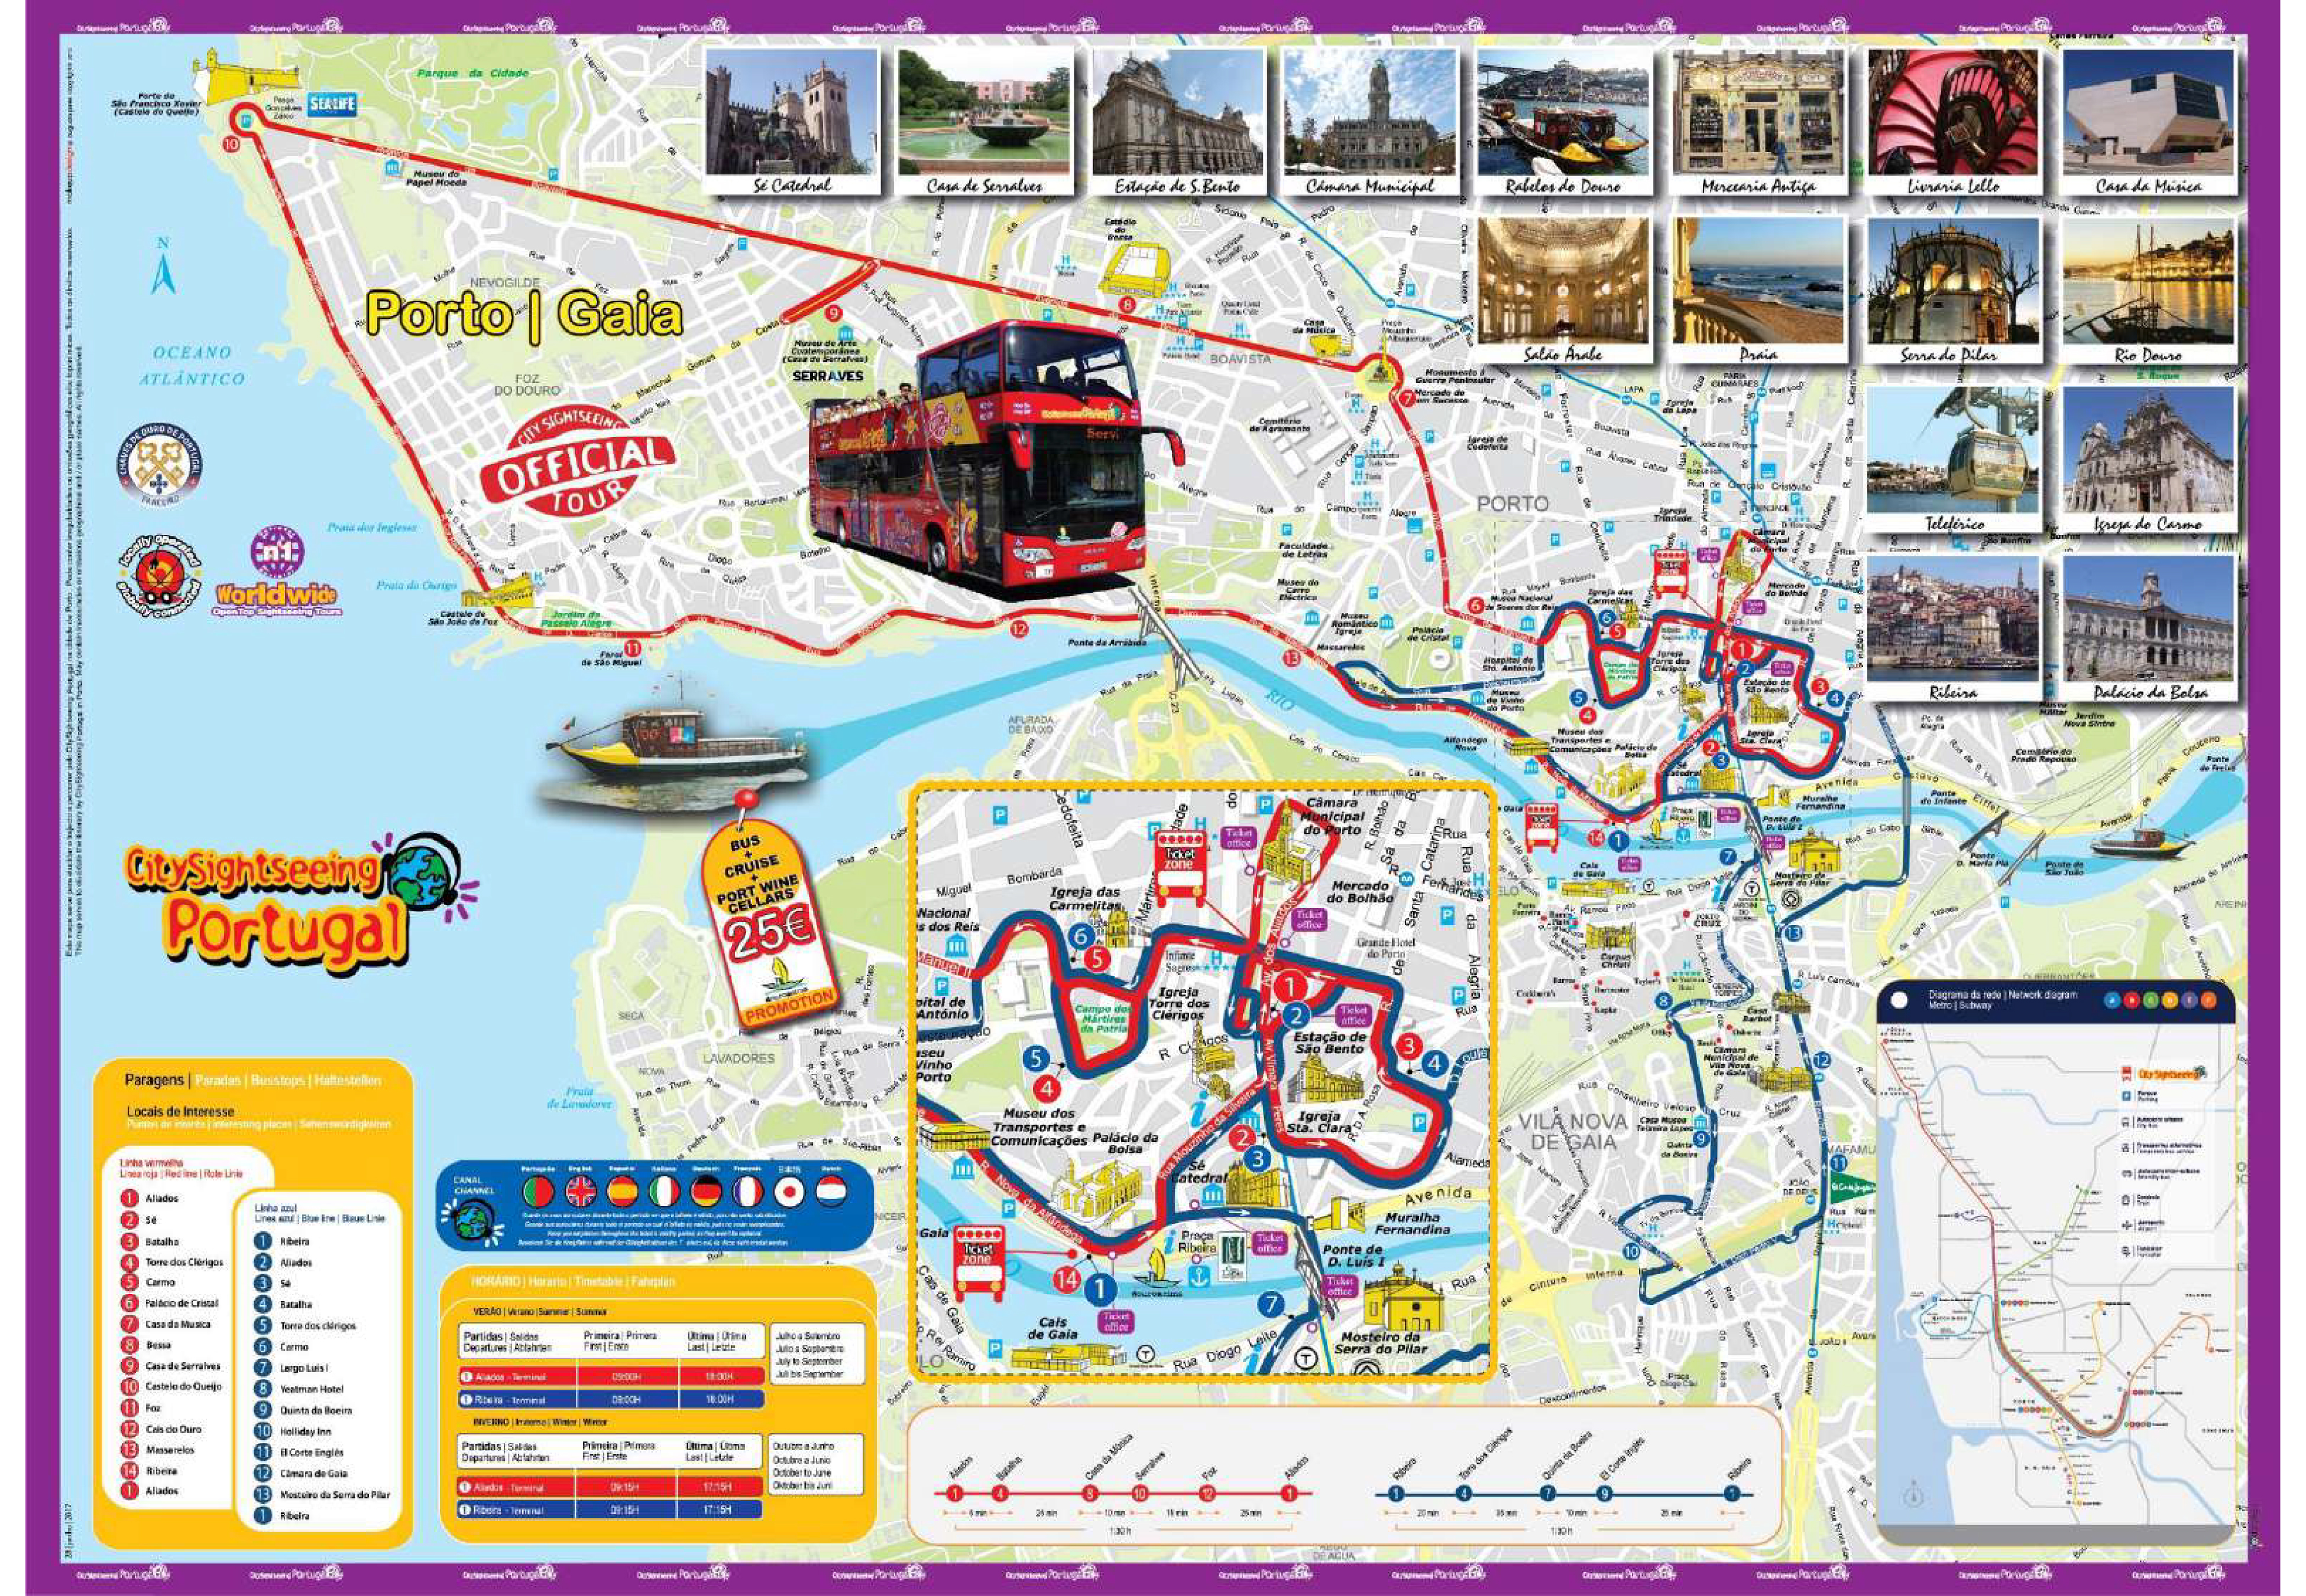 City Sightseeing Porto Hop On Hop Off Bus Tour